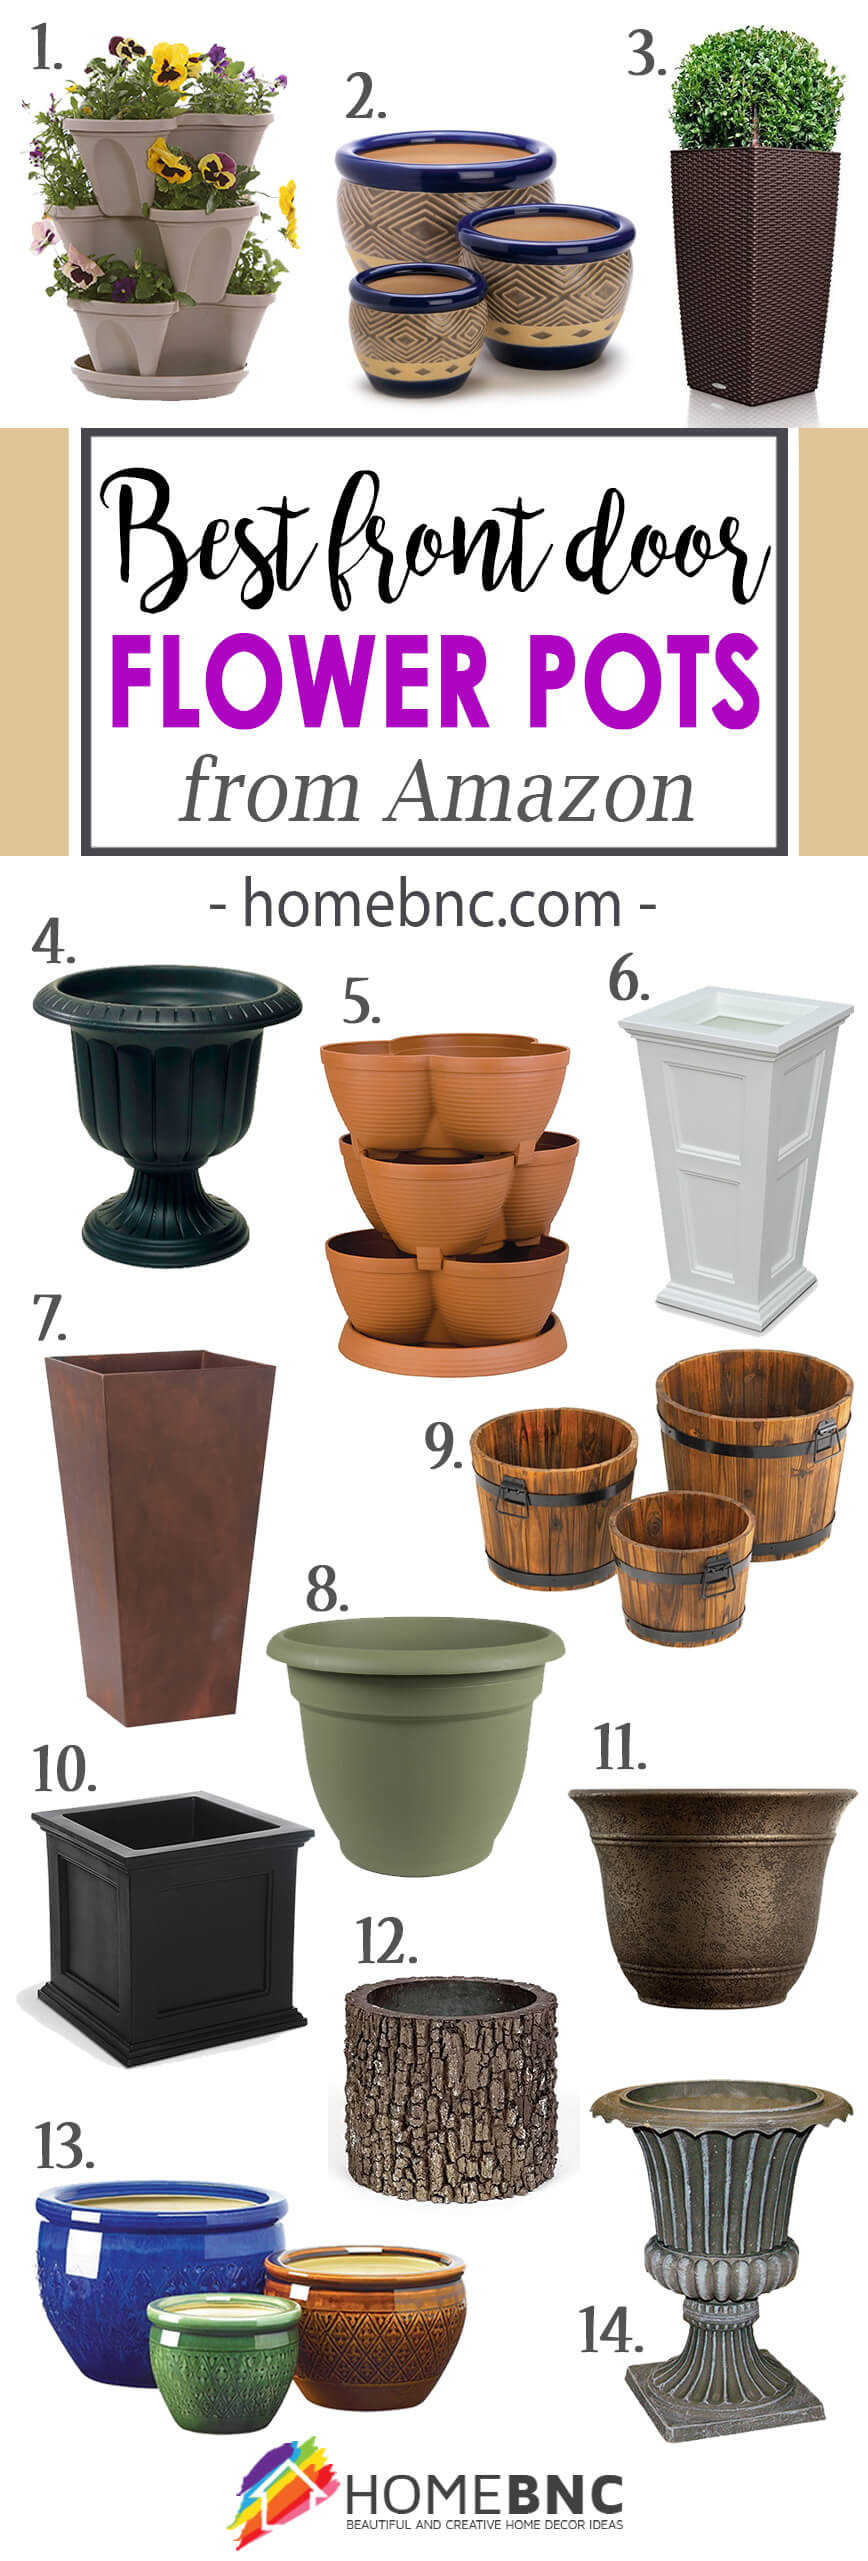 29 Nice Pottery Barn Tuscan Terracotta Vases 2021 free download pottery barn tuscan terracotta vases of 29 best front door flower pots ideas and designs for 2018 pertaining to best flower pots from amazon